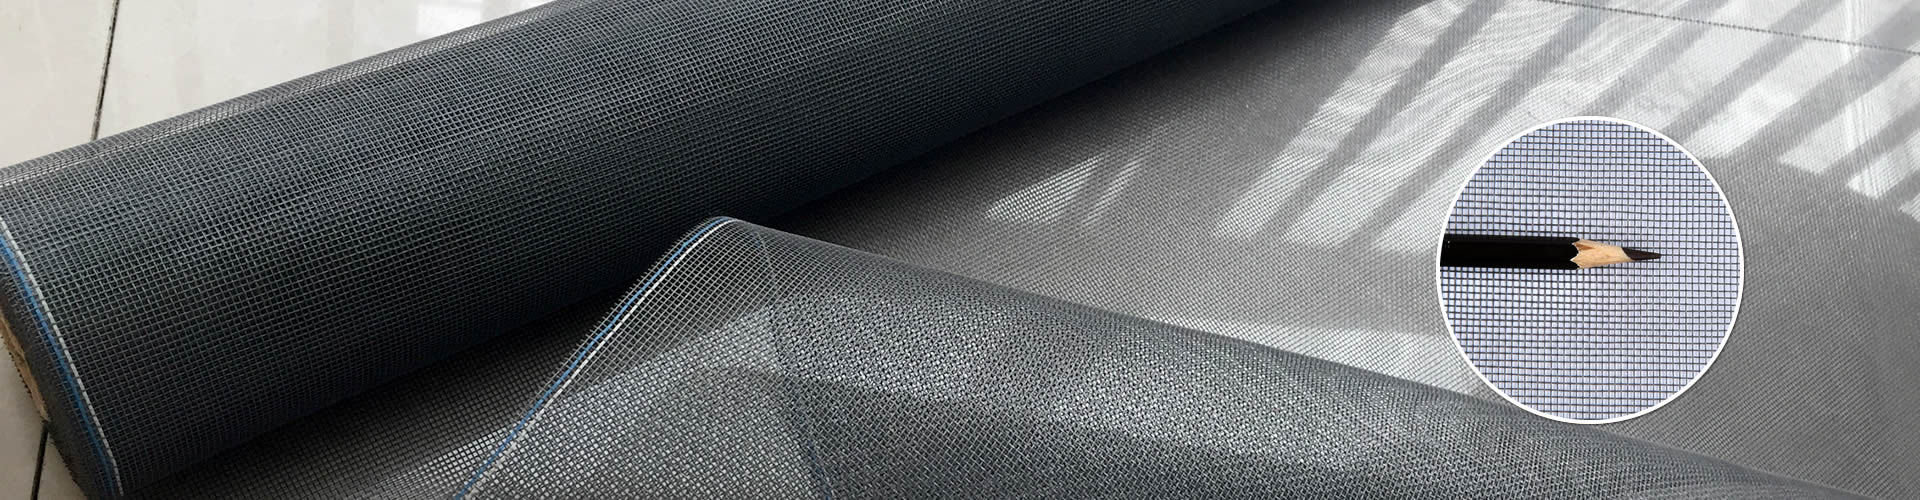 This is a roll of black anti-dust window screen with fine mesh structure and high density.